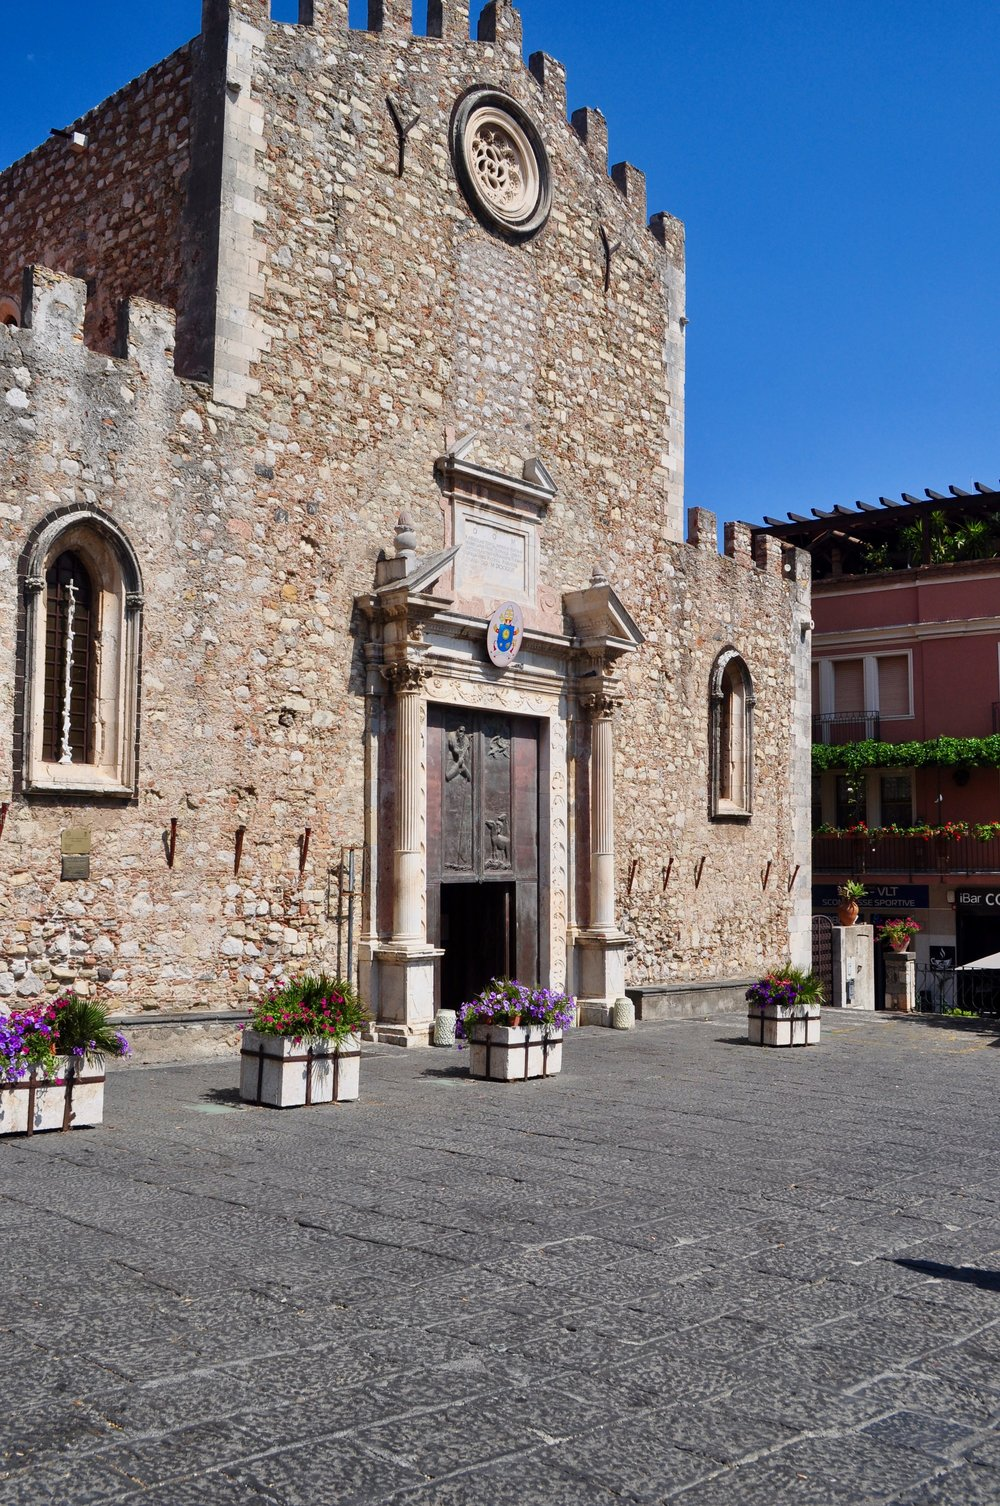 Top 5 Free Things to See in Taormina - A Happy Passport #taormina #italy #travel